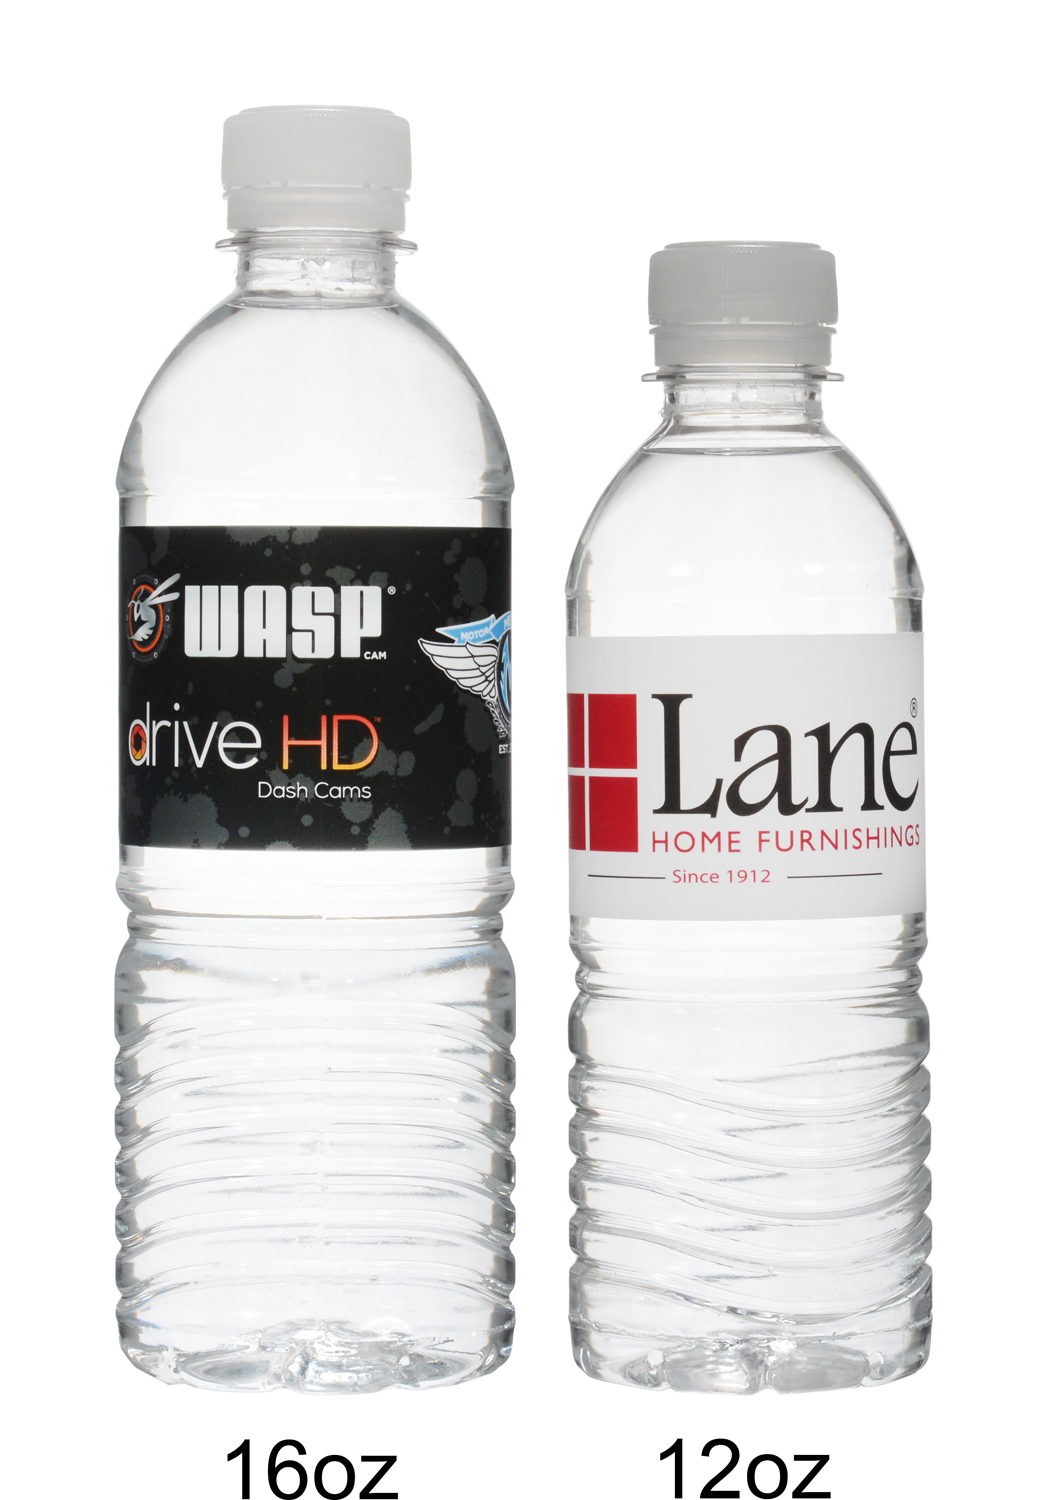 Custom water bottles produced and shipped from Arizona.